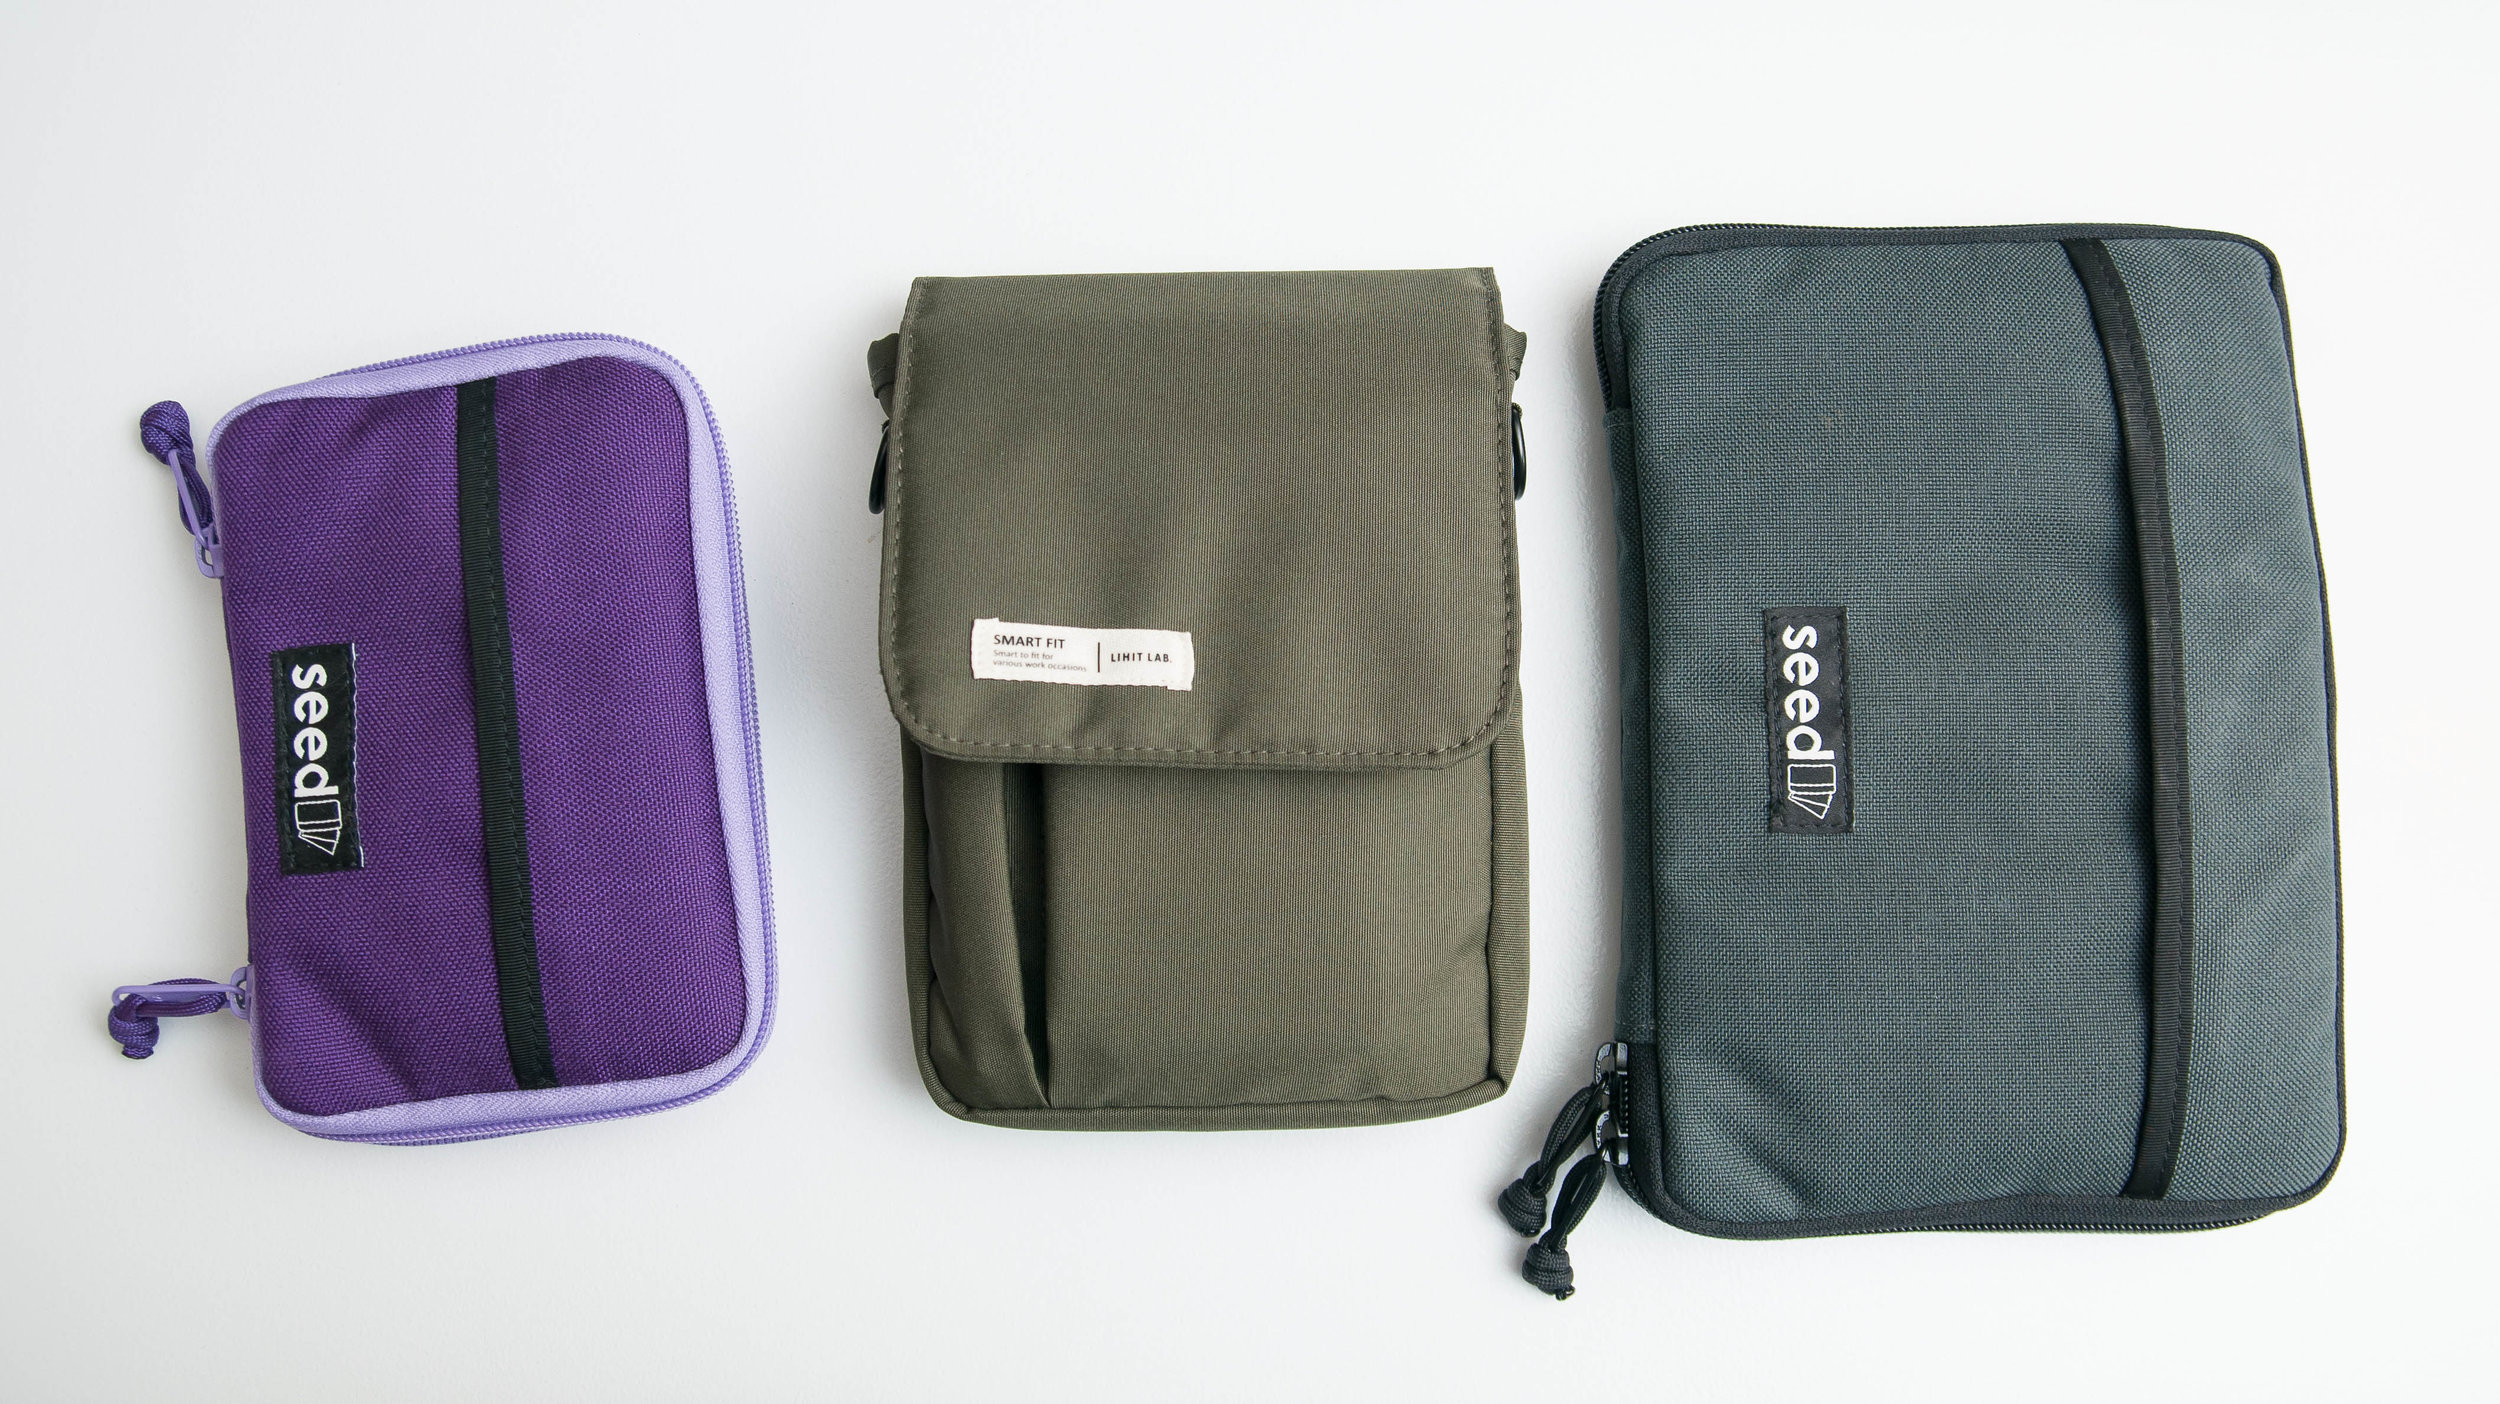 Lihit Lab Smart Fit A6 Carry Pouch Size